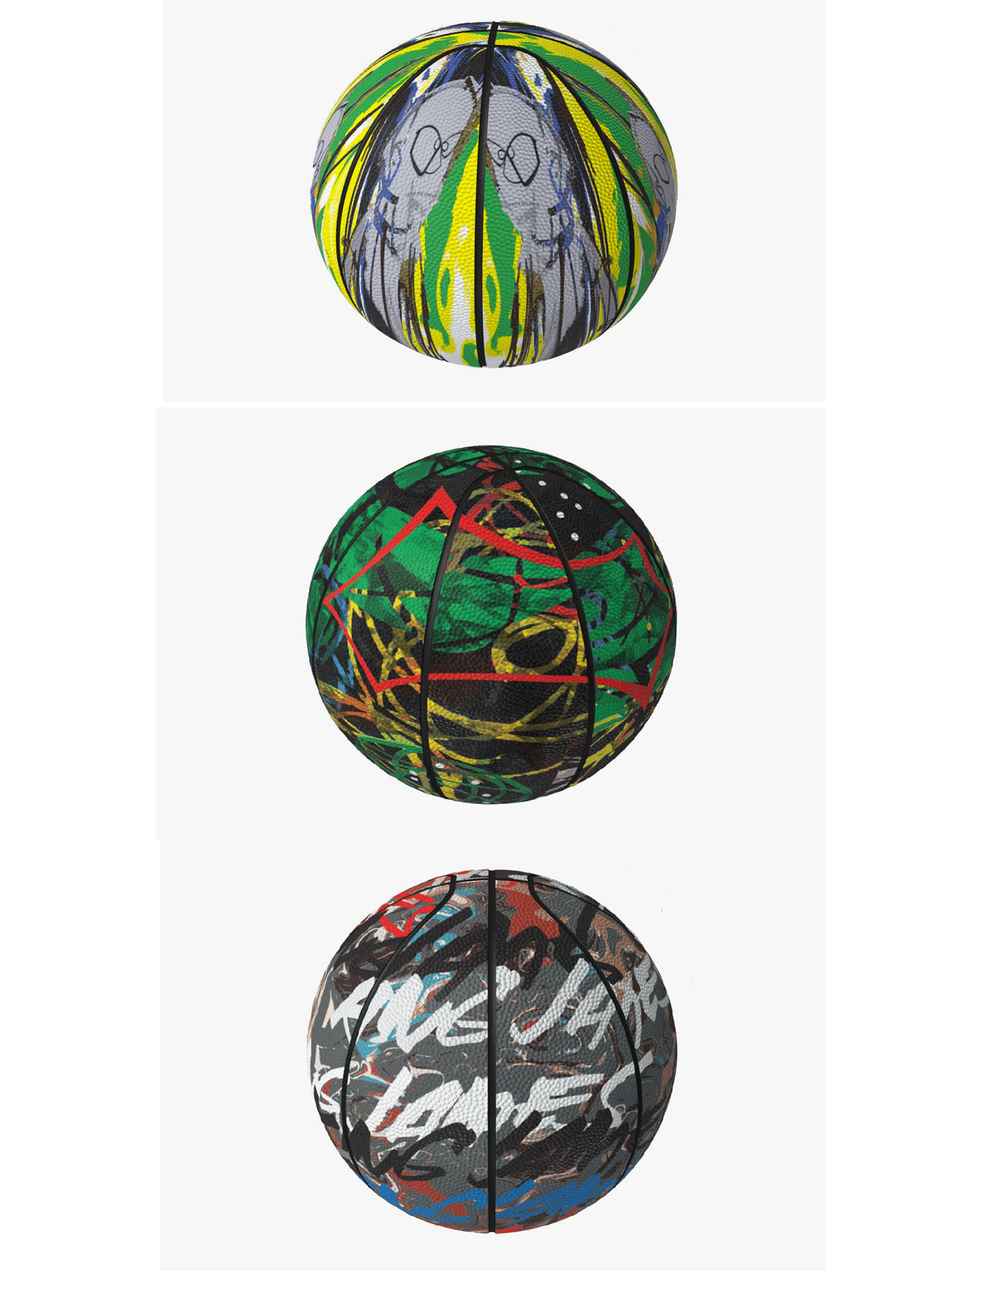 "Sprite and legendary artist Futura have partnered this NBA All-Star Weekend to create three uniquely designed basketballs that bring together the sport of basketball and street culture. The basketballs include three one-of-a-kind designs: ""King James"" which was created in collaboration with LeBron James, ""Double Dribbler"" which features Futura's signature style, and ""Leave Your Mark"" which was inspired by Sprite's self-expressive platform. After NBA All-Star Weekend comes to an end, the basketballs will be up for auction so that fans can fairly bid on them. Proceeds will benefit Boys & Girls Clubs of America. READ MORE:highsnobiety."